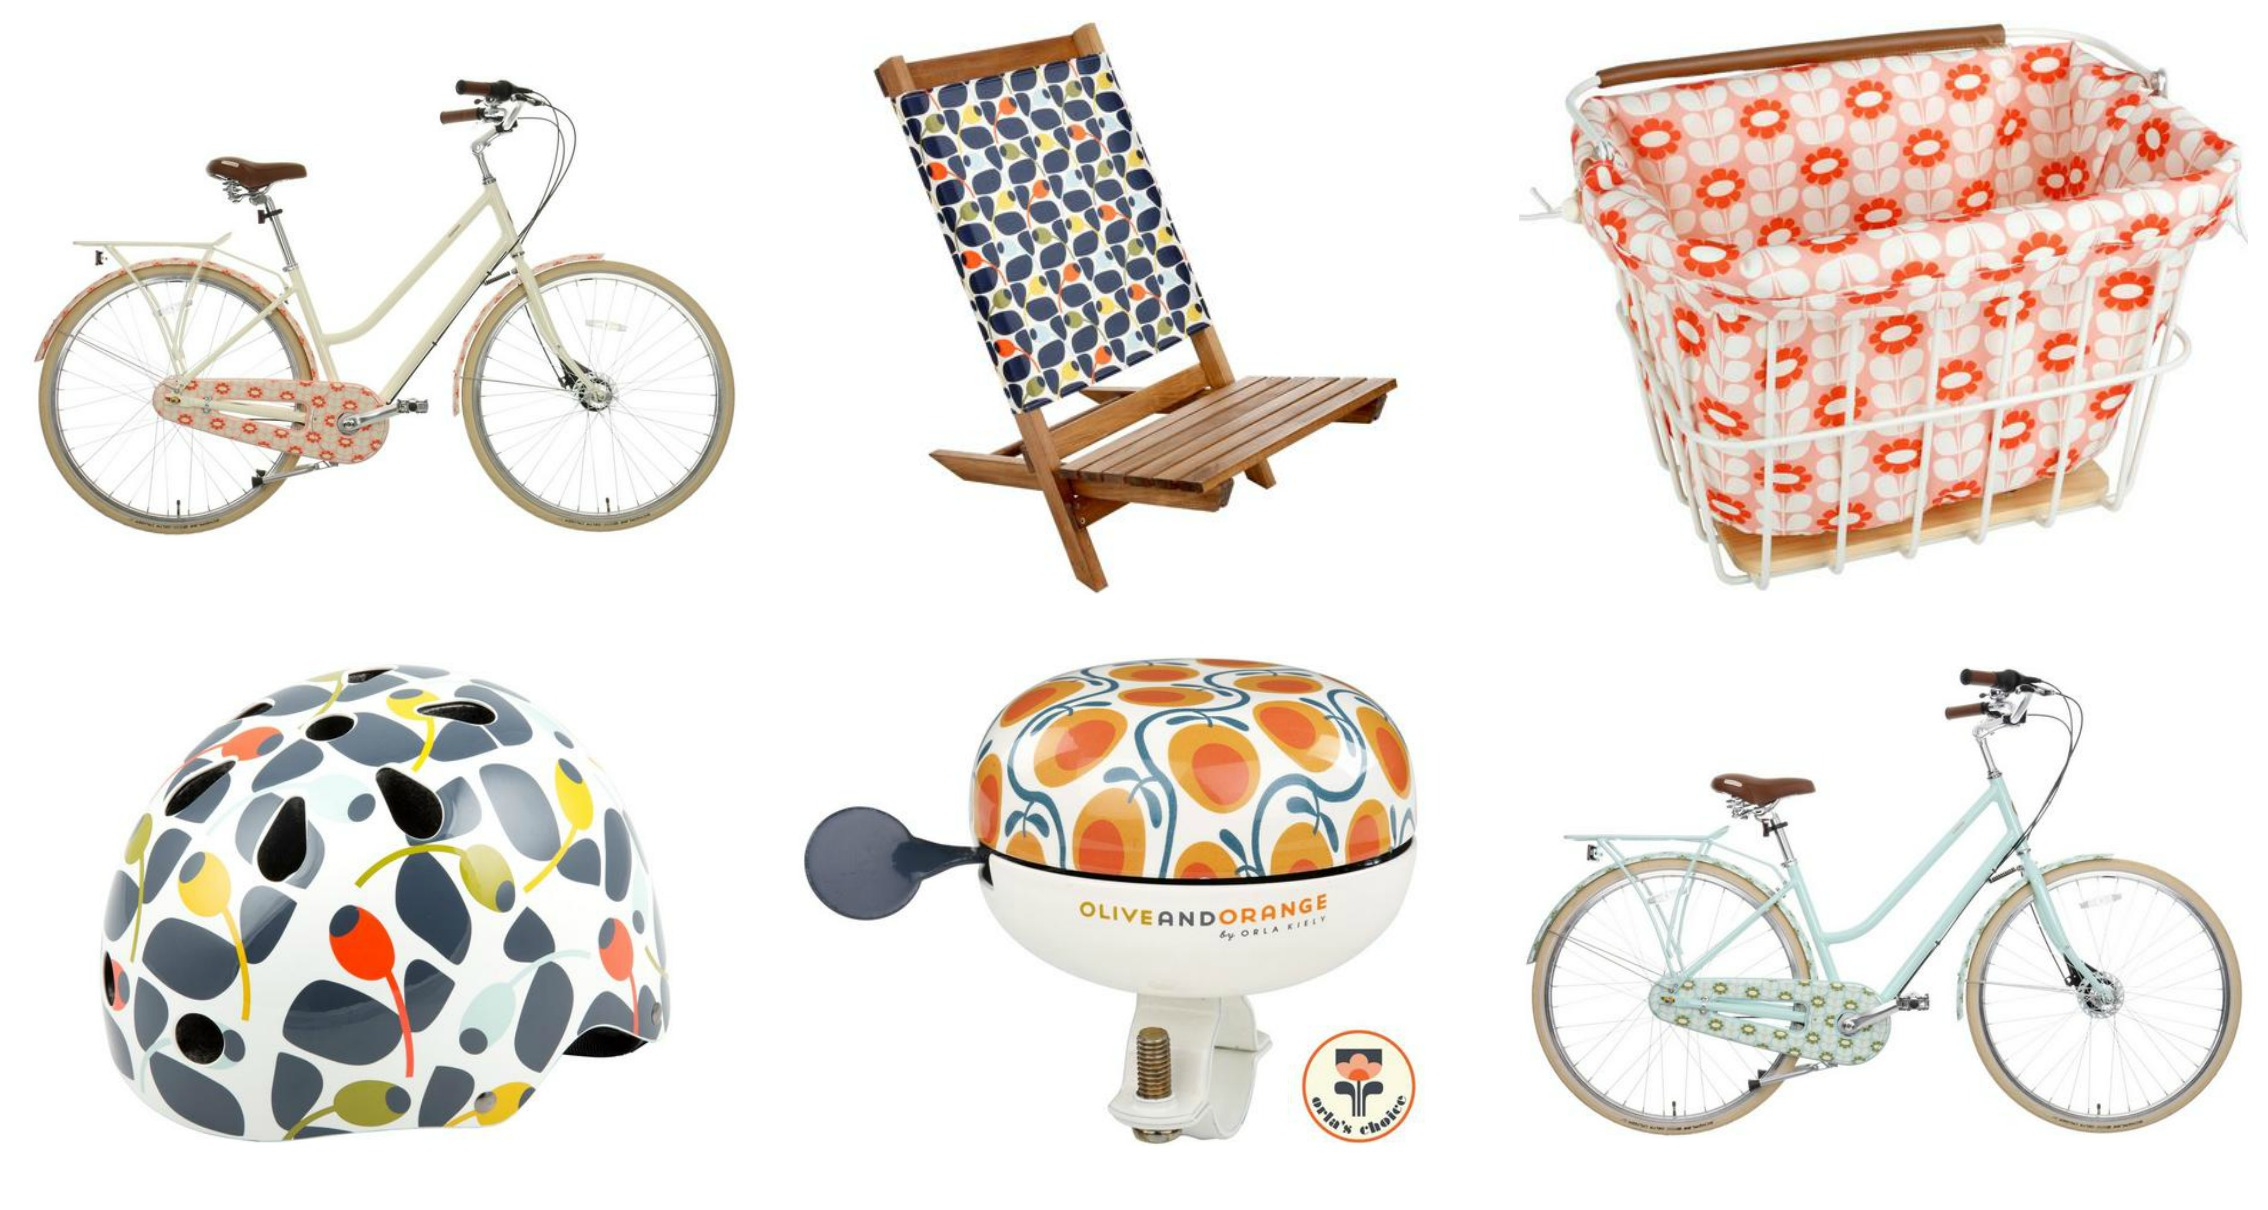 Olive and Orange range by Orla Kiely for Halfords